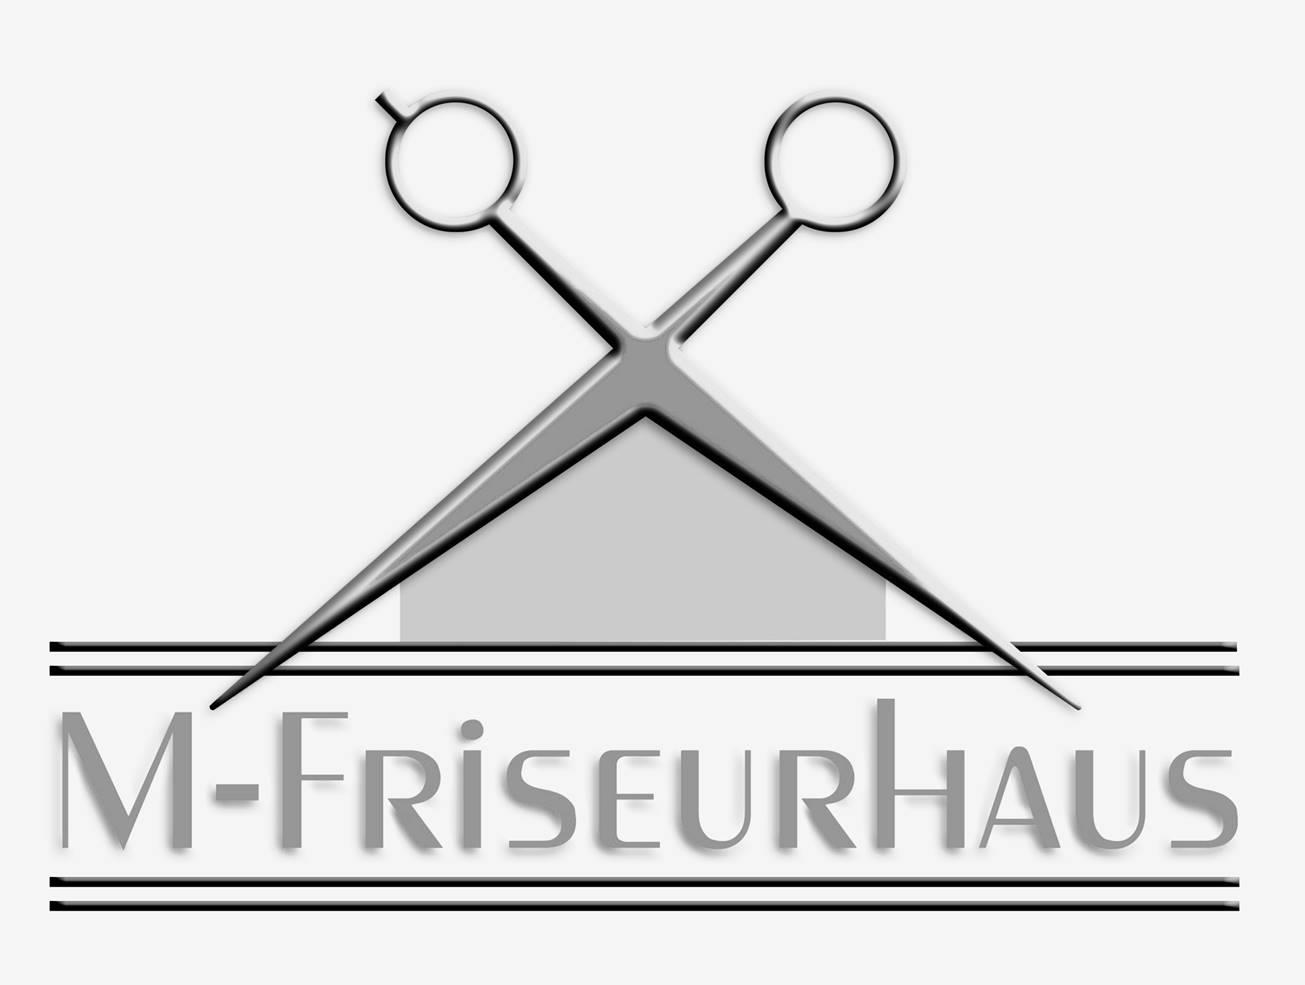 M-Friseurhaus Hairdreams Competence Center